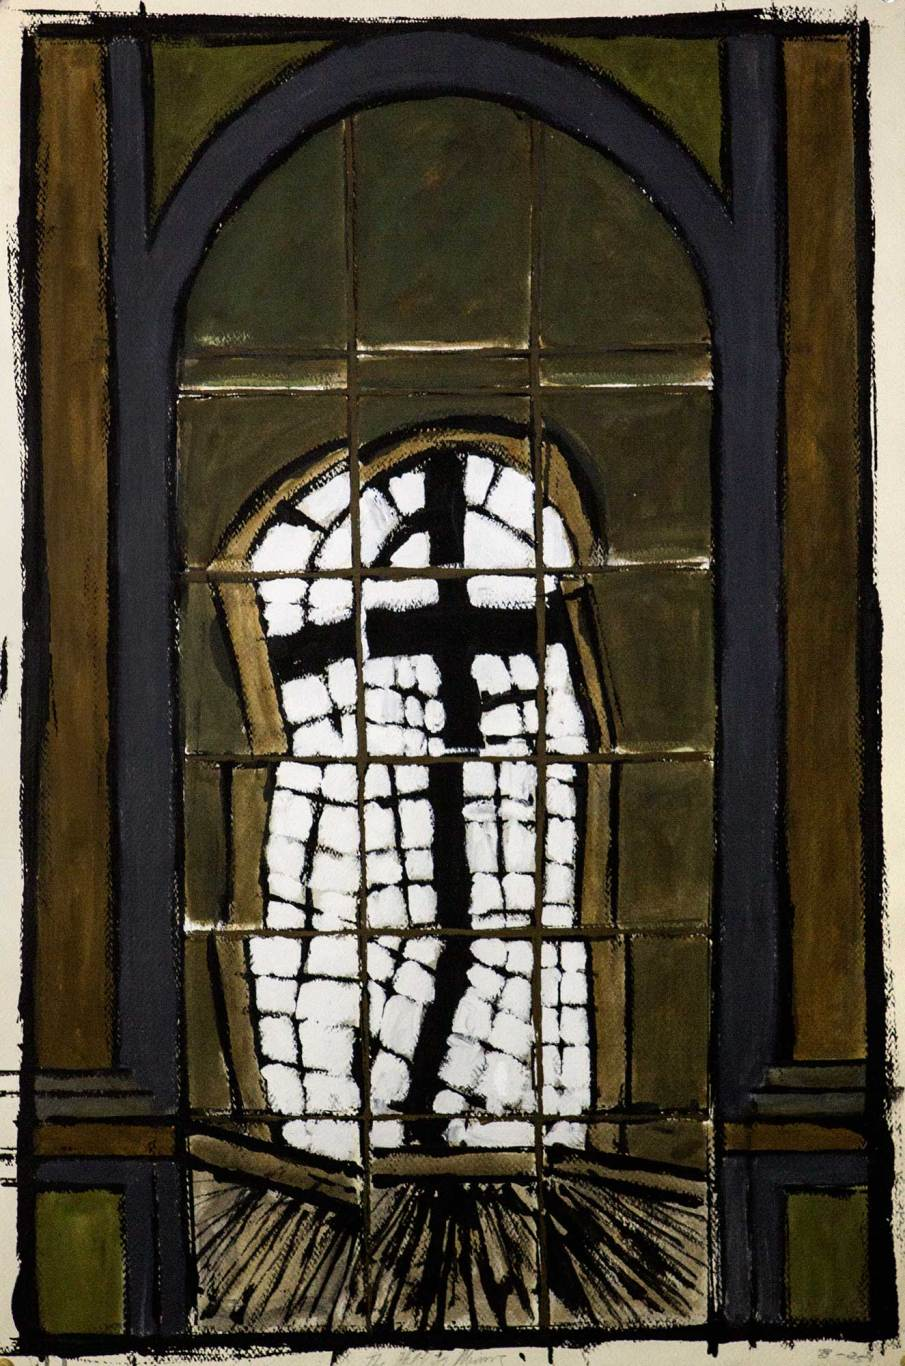 The Hall of Mirrors, acrylic and oil on paper, 40 X 30, 1989